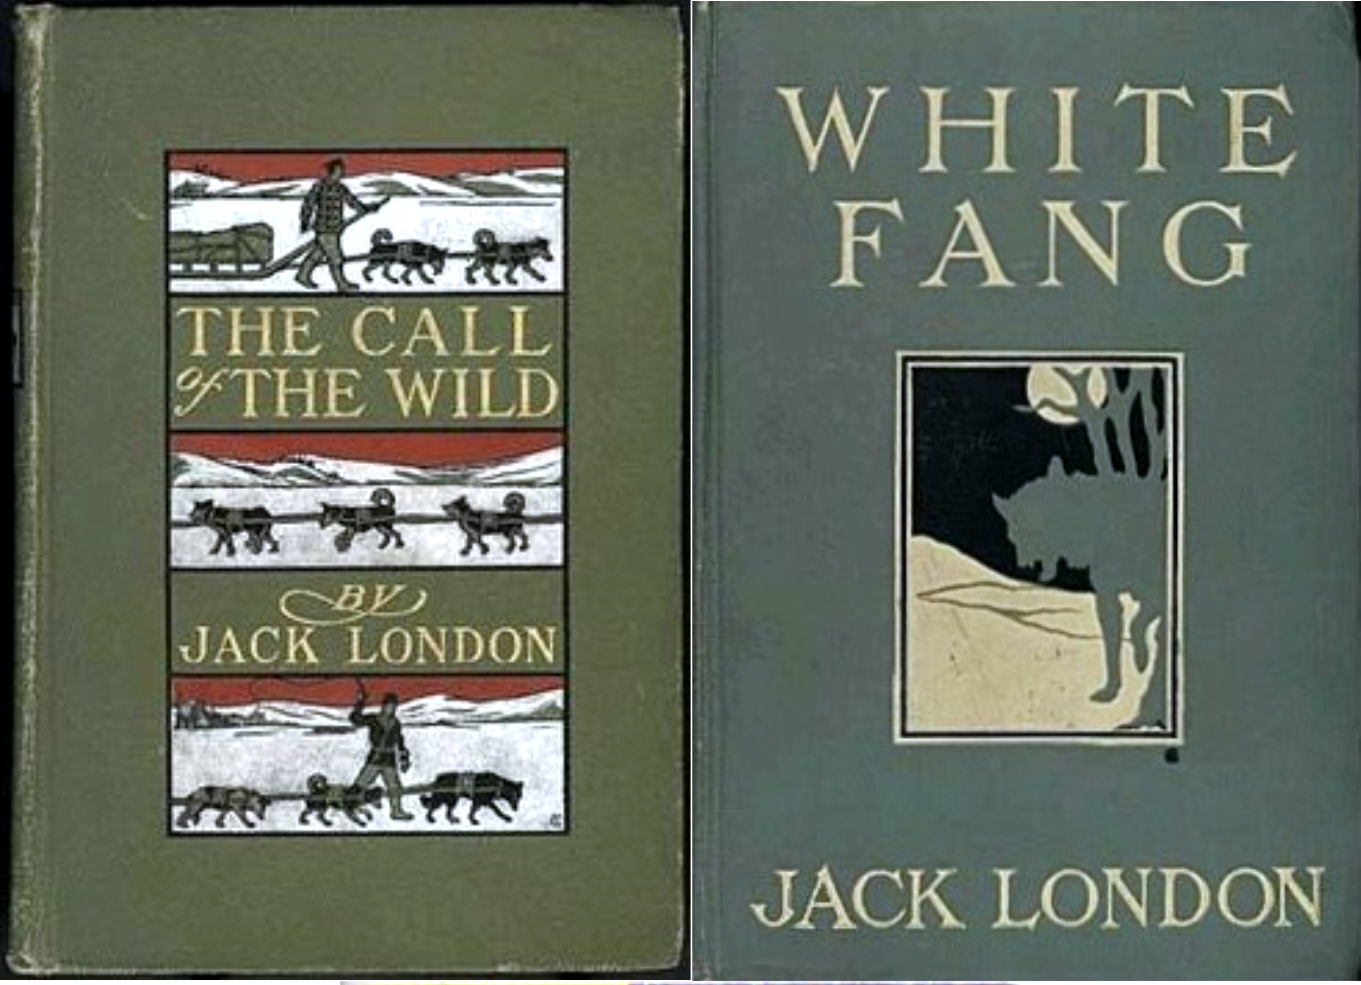 jack london and his call of